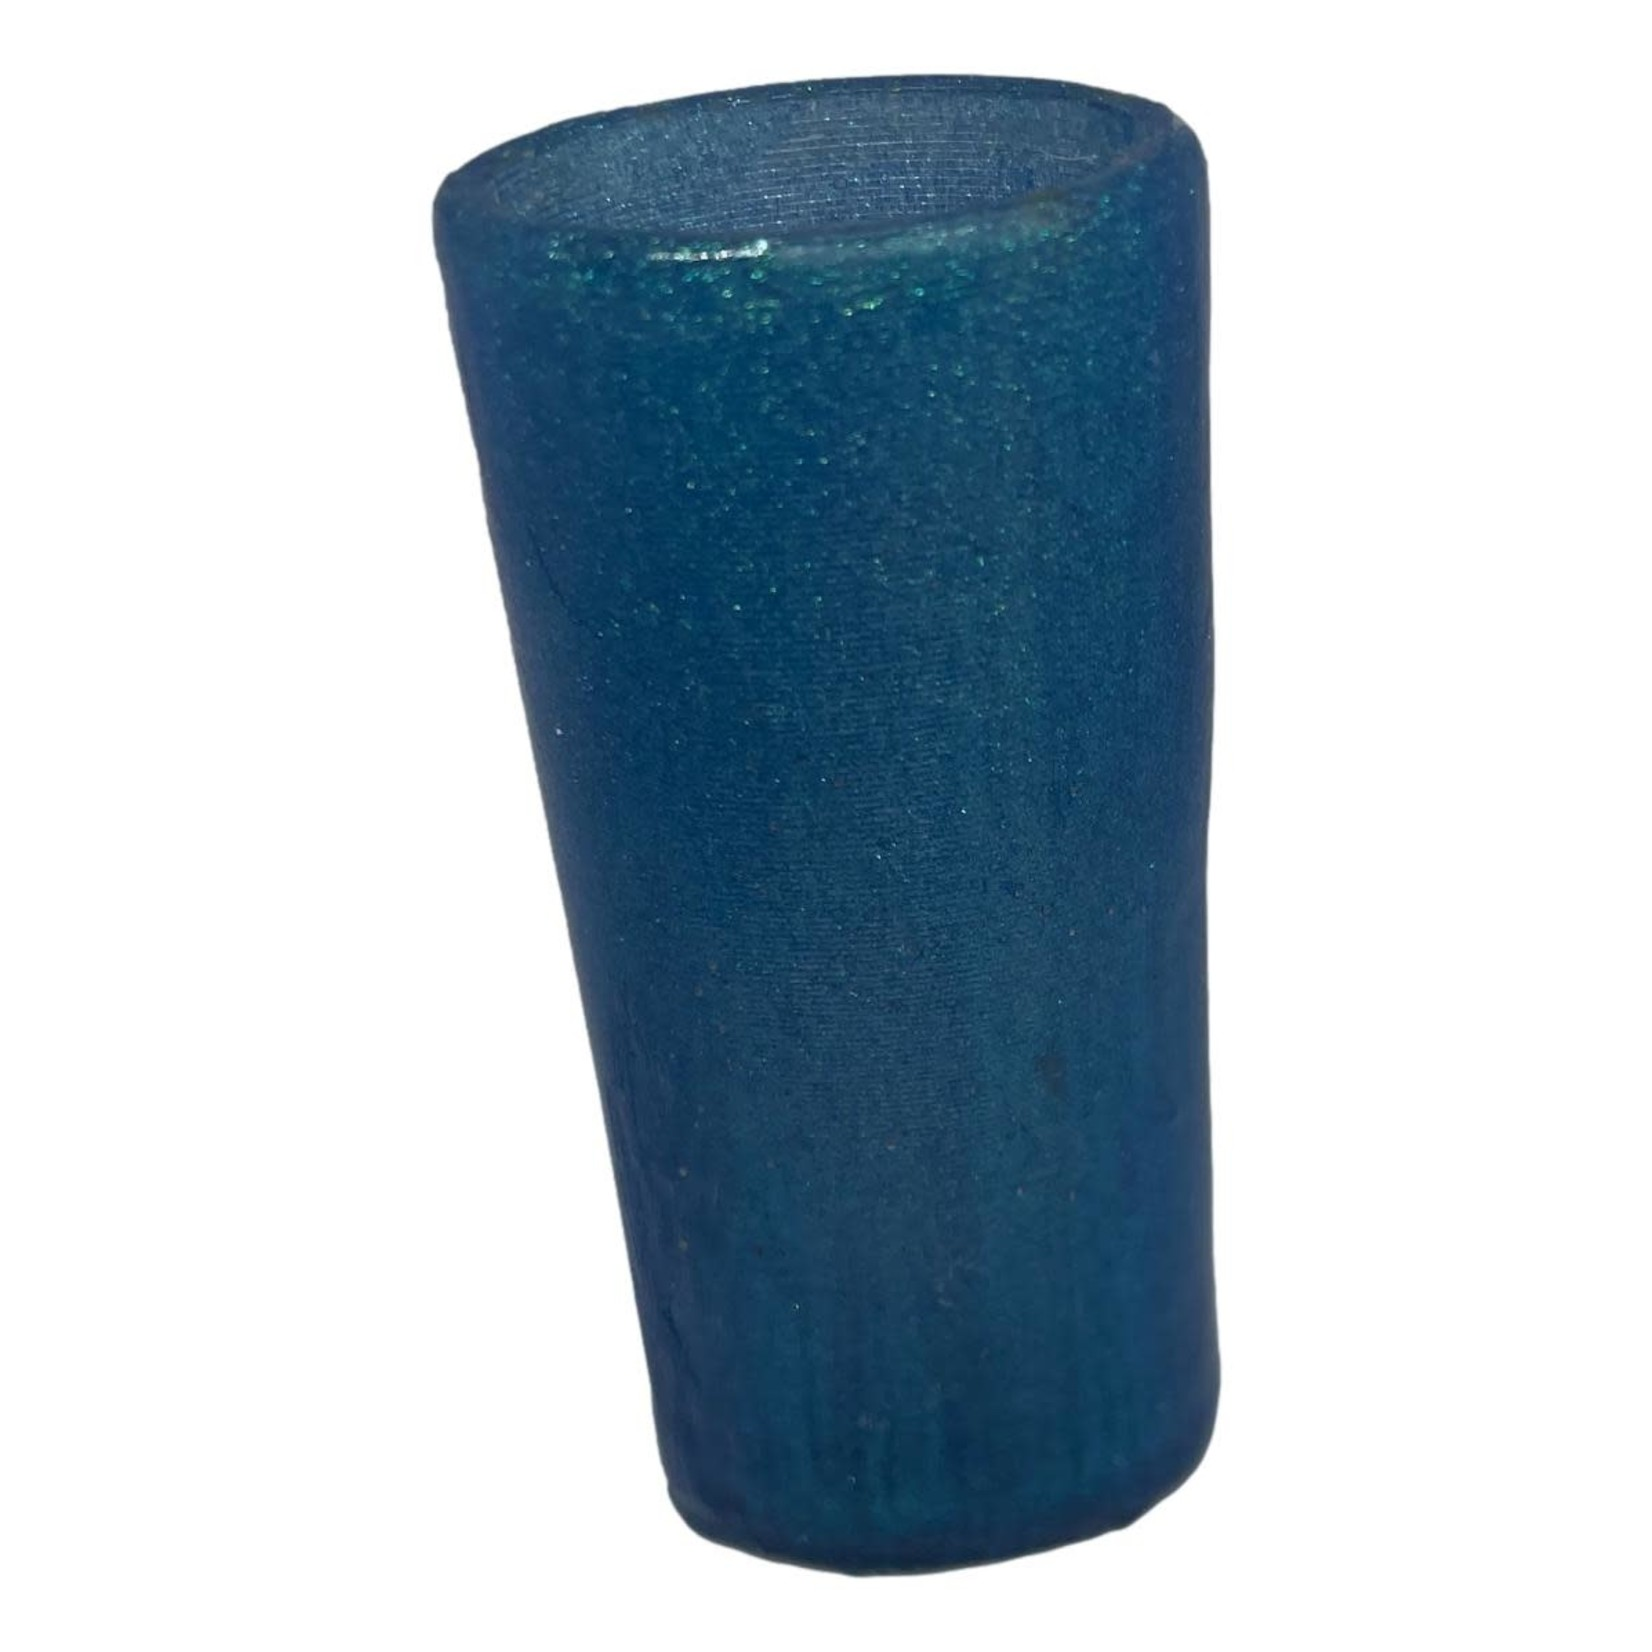 East Coast Sirens Just a Blue Lighter Case (Small)